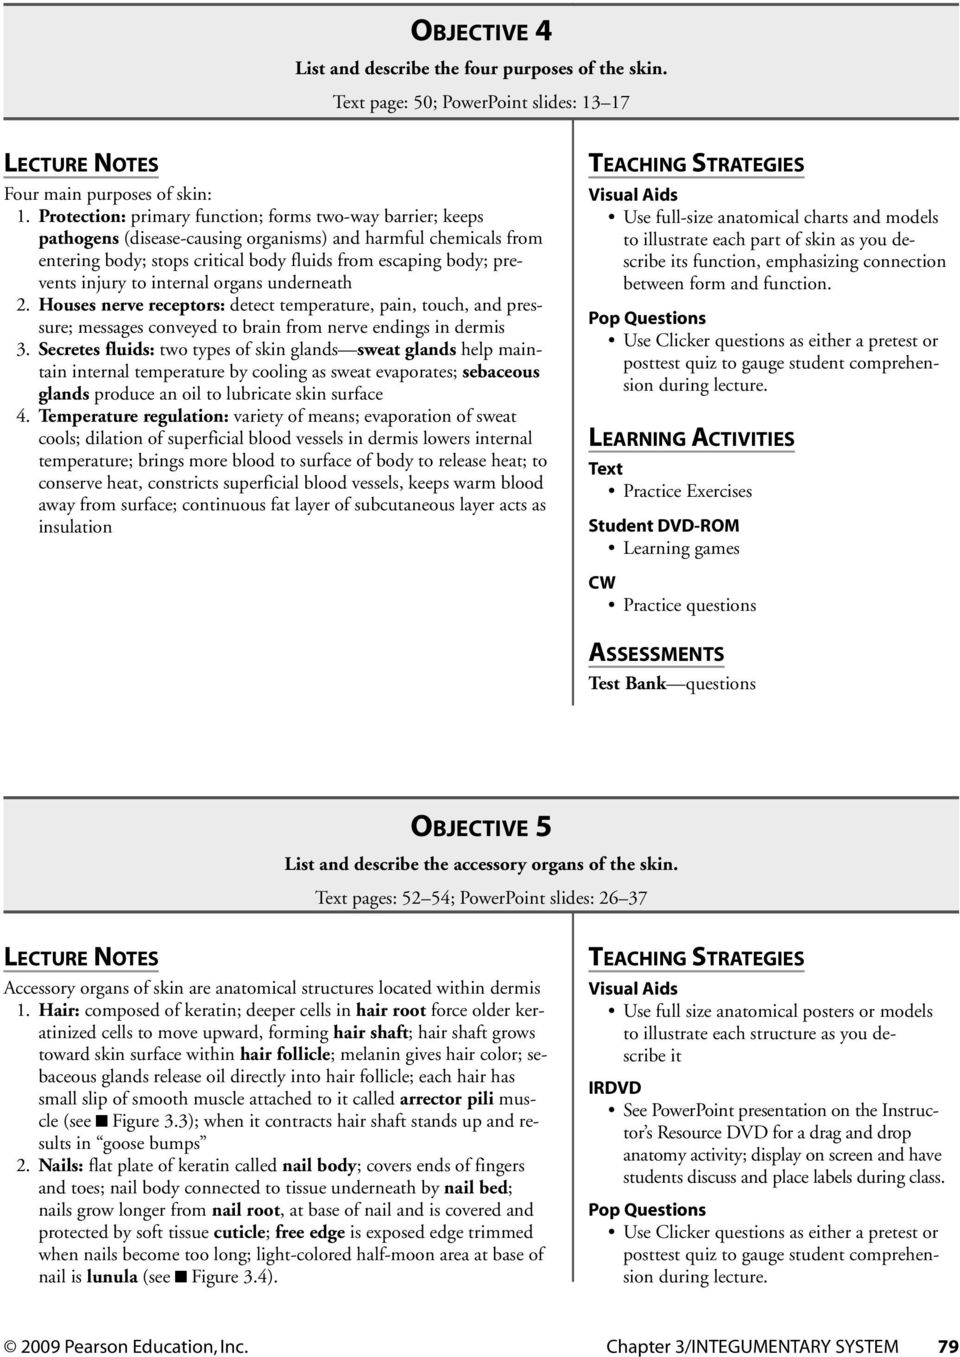 Tolle Pearson Test Bank Questions Anatomy And Physiology Fotos ...